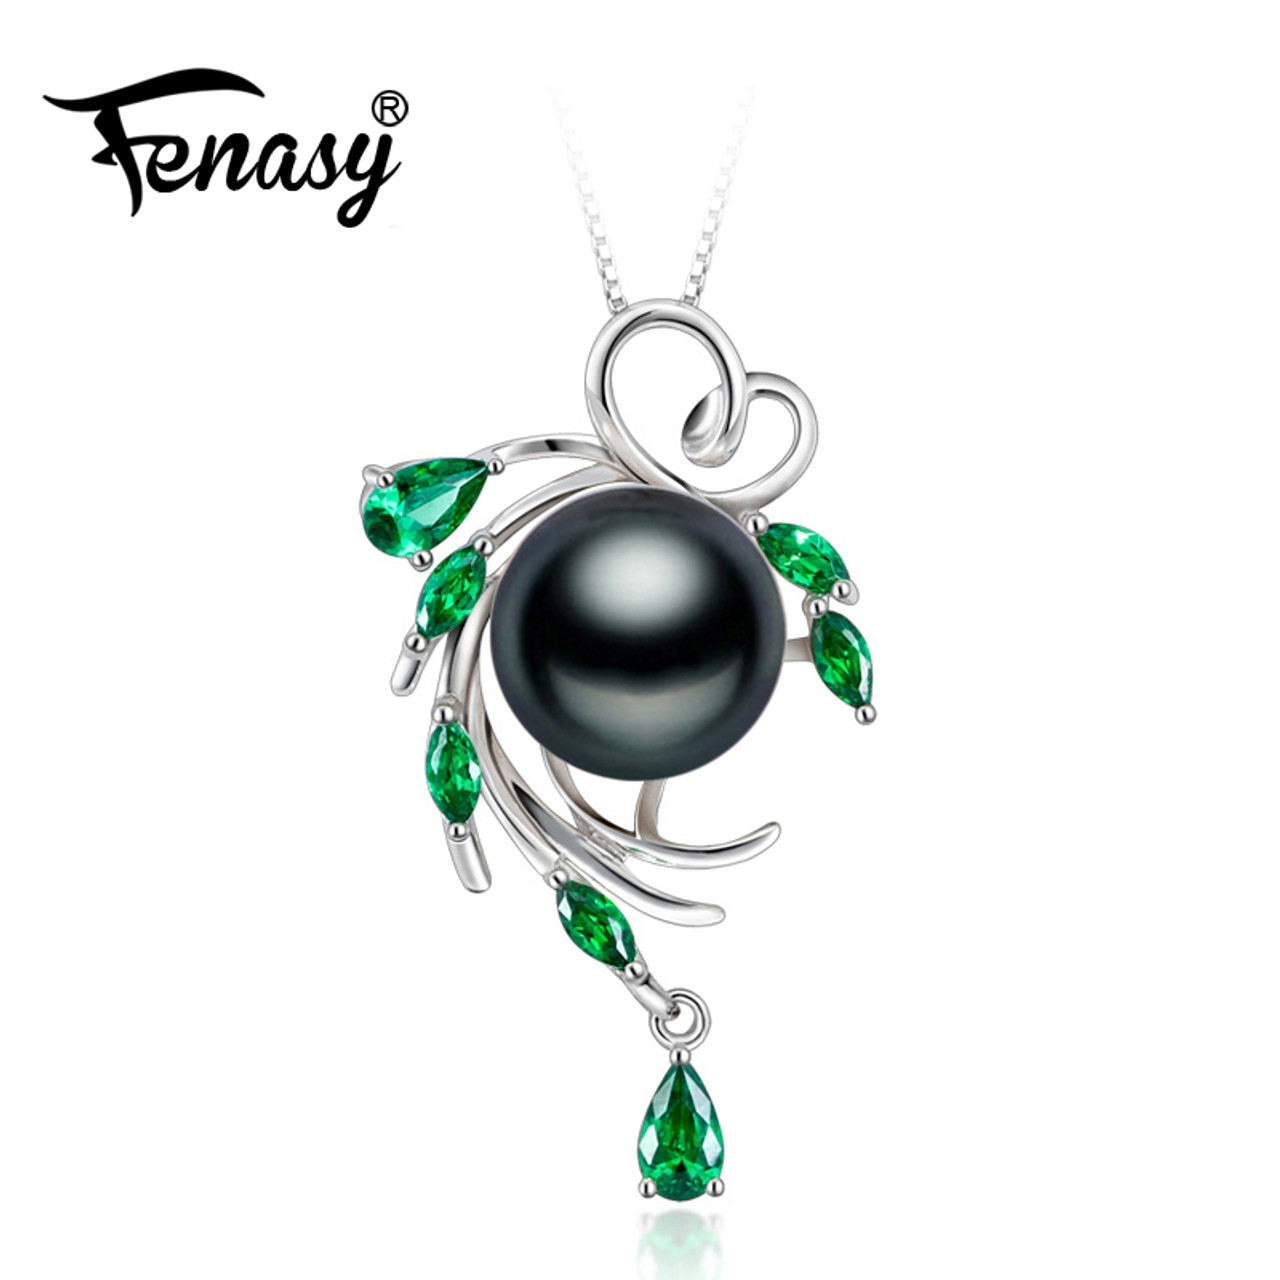 Fenasy 925 sterling silver flower necklacepearl jewelry bohemia fenasy 925 sterling silver flower necklacepearl jewelry bohemia necklacepearl pendant necklace for mozeypictures Image collections